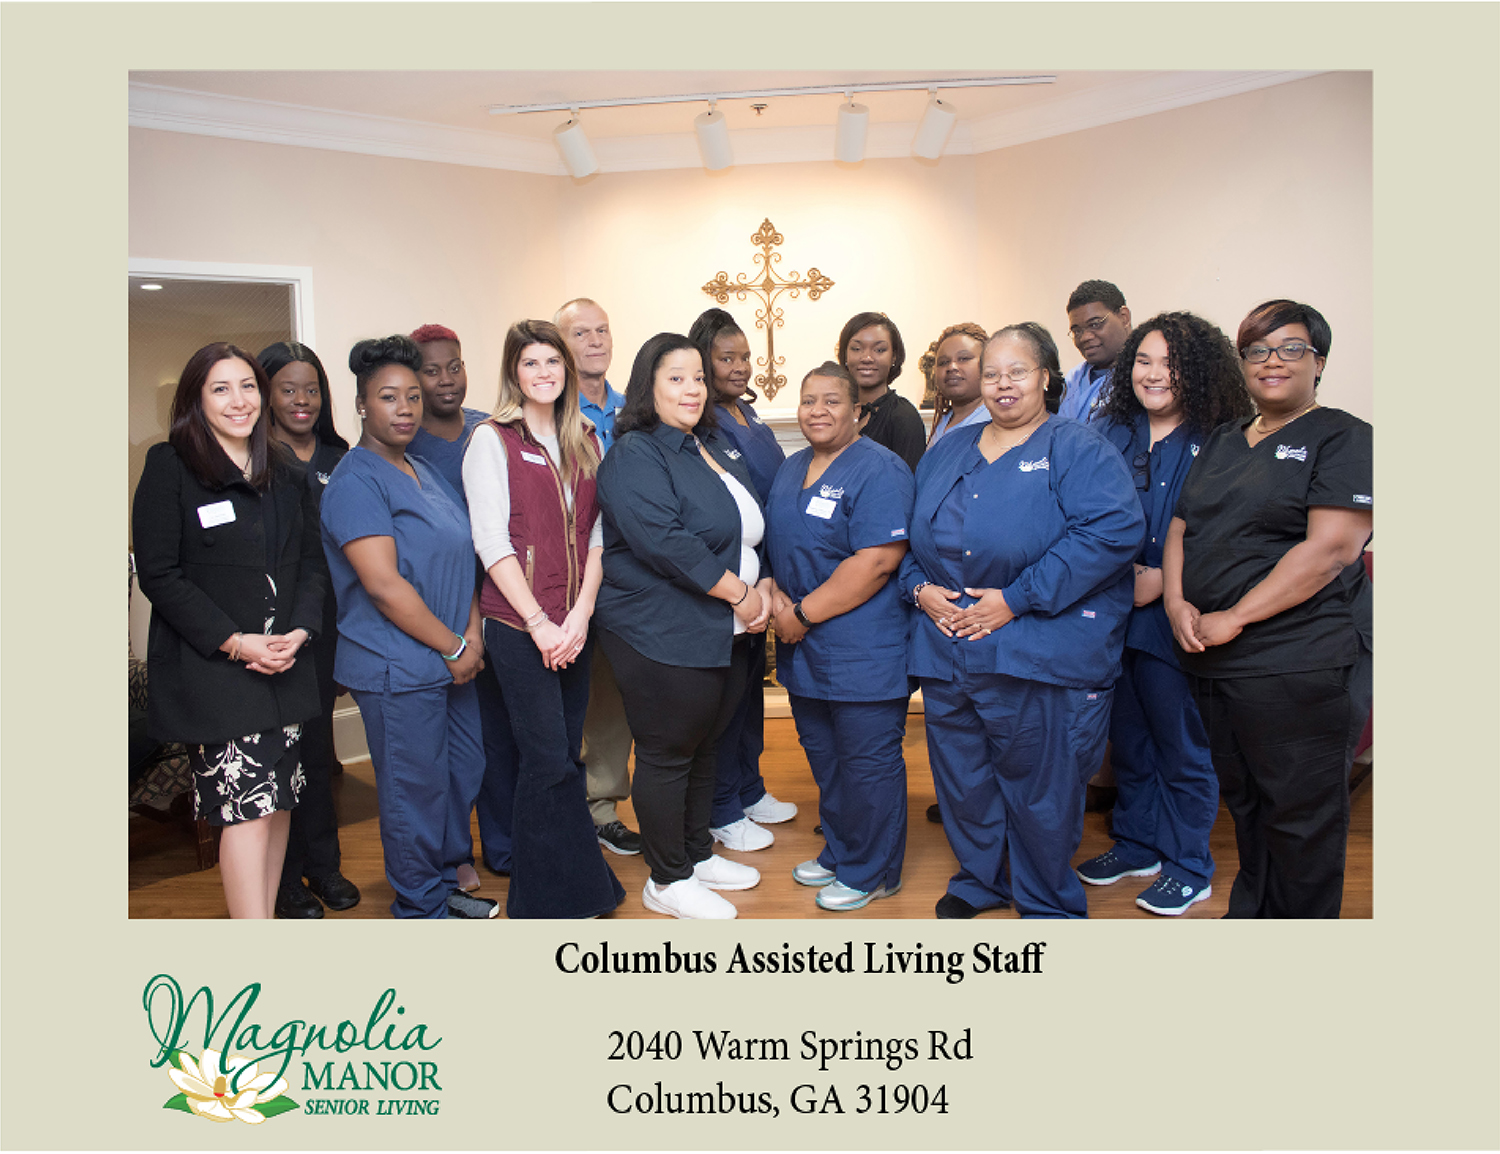 Columbus Assisted Living Staff (2019)